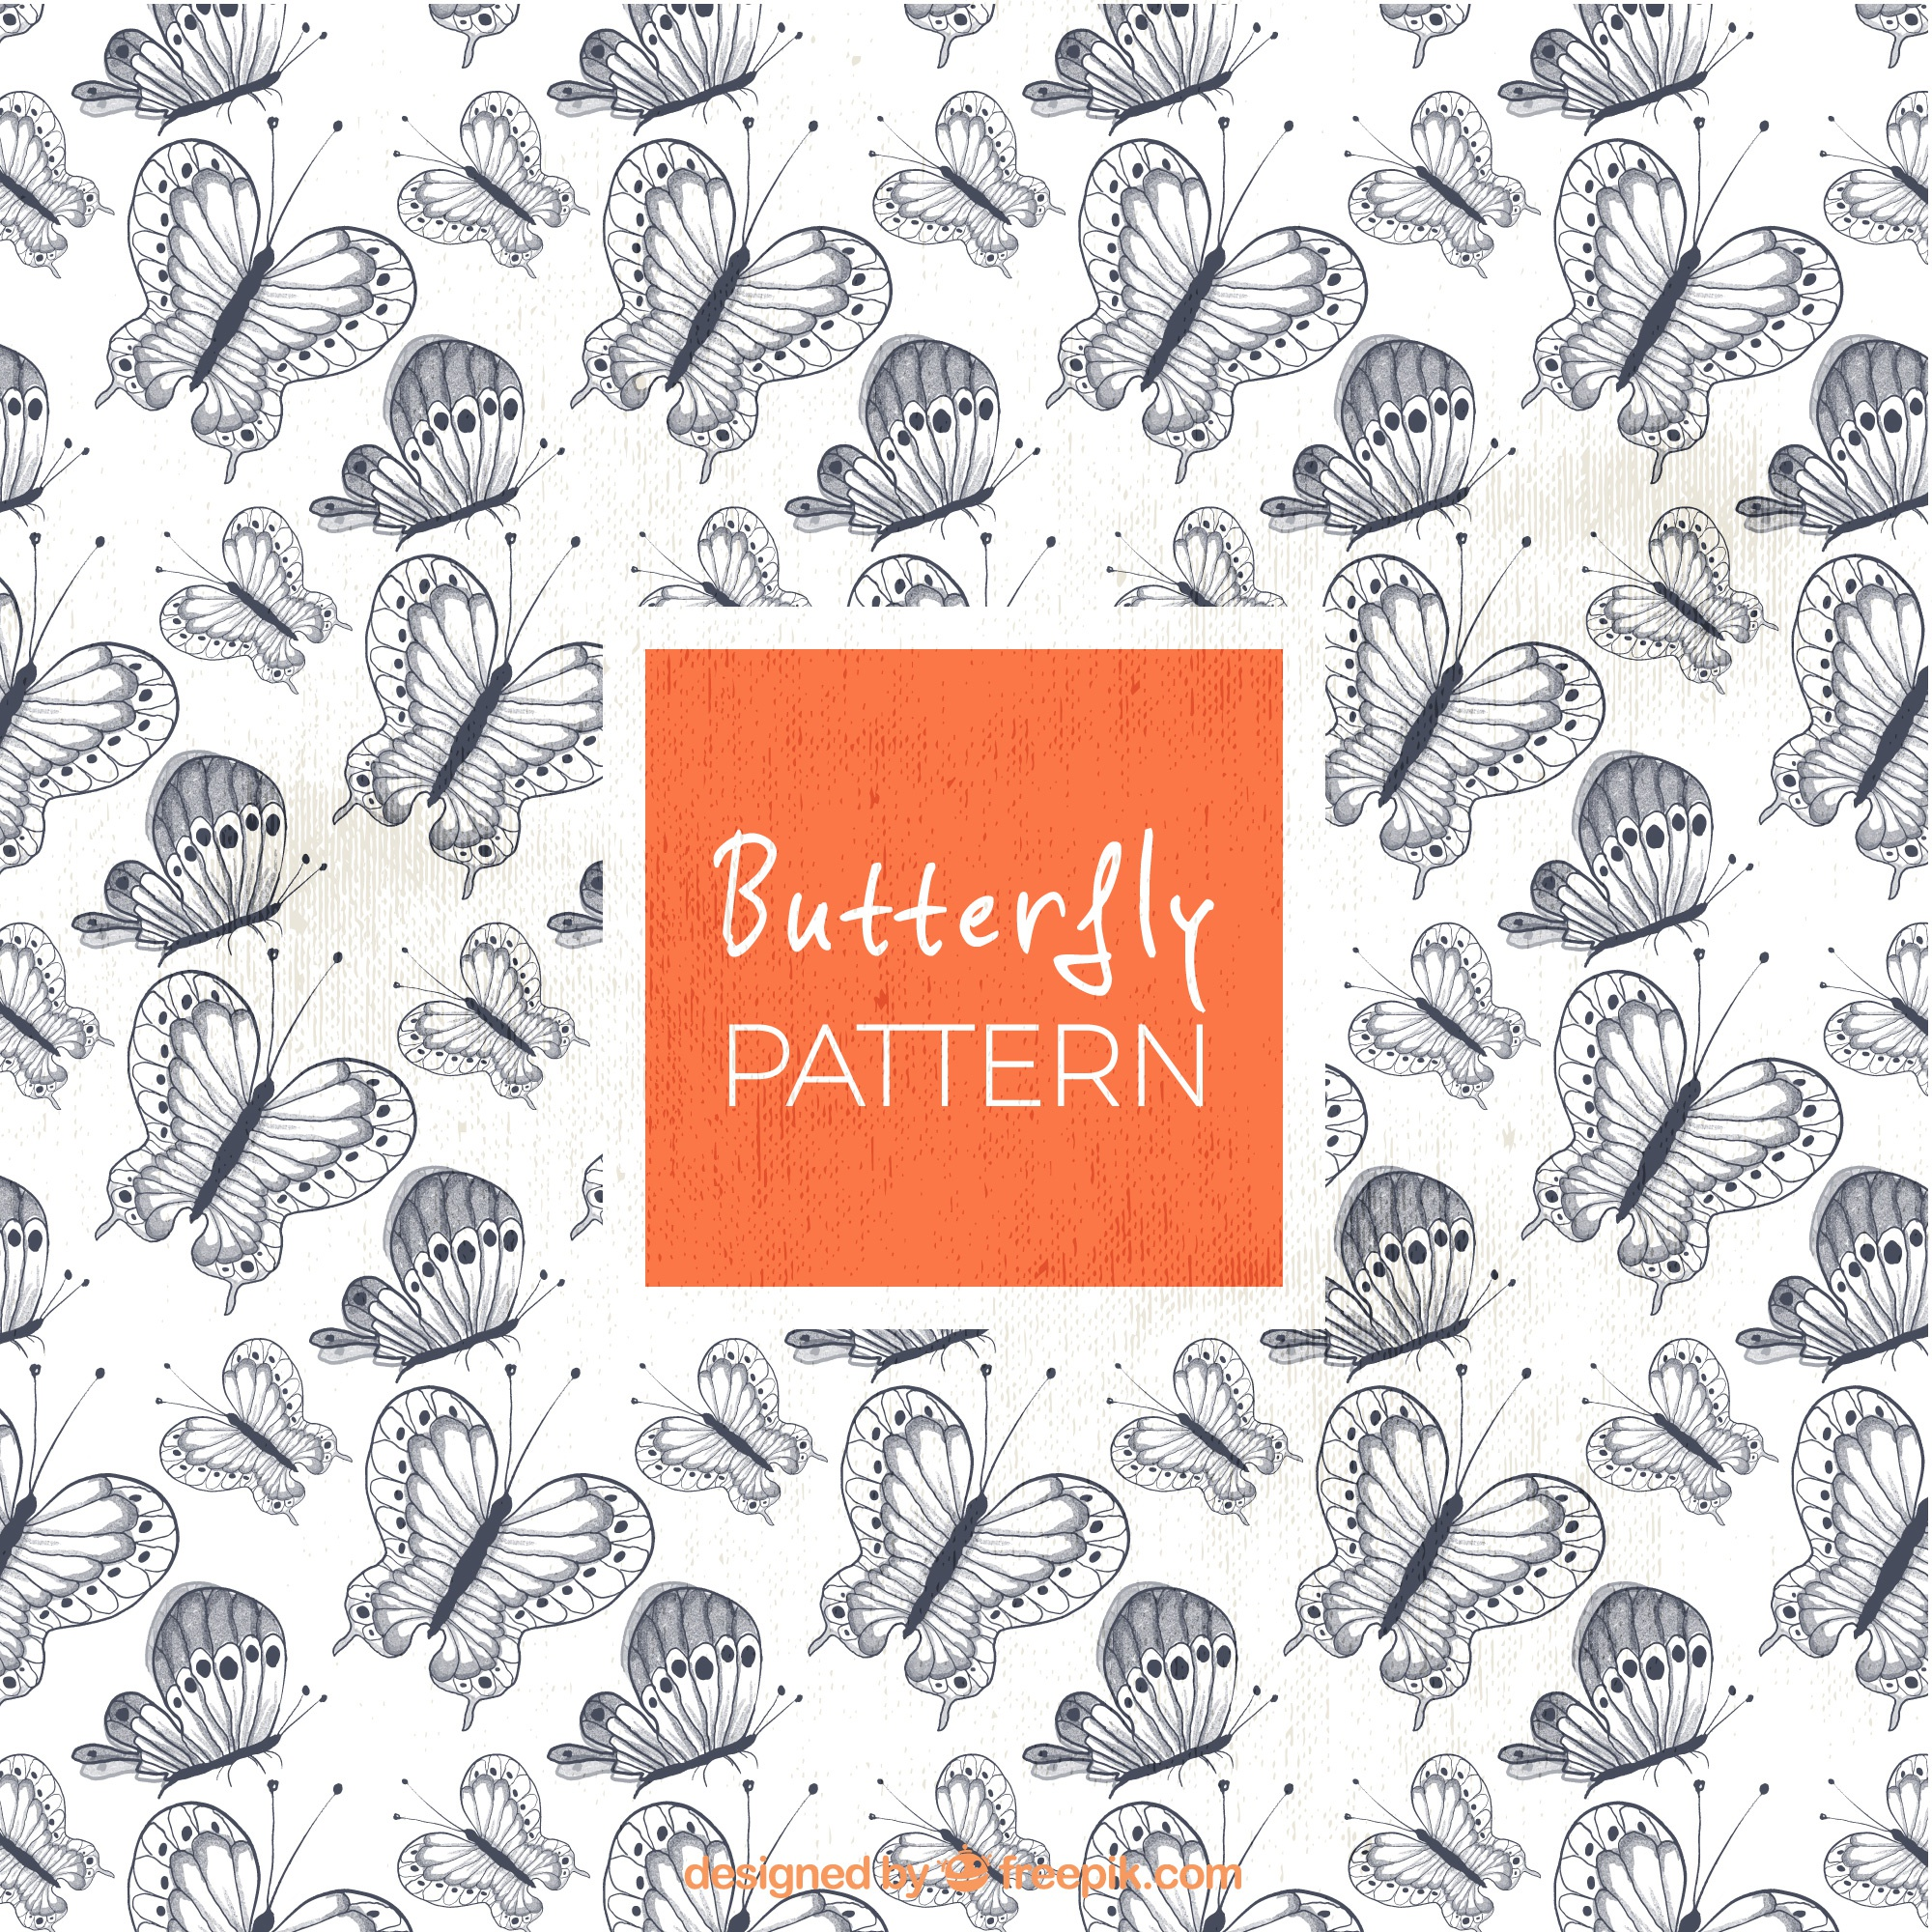 Vintage pattern of pretty butterflies